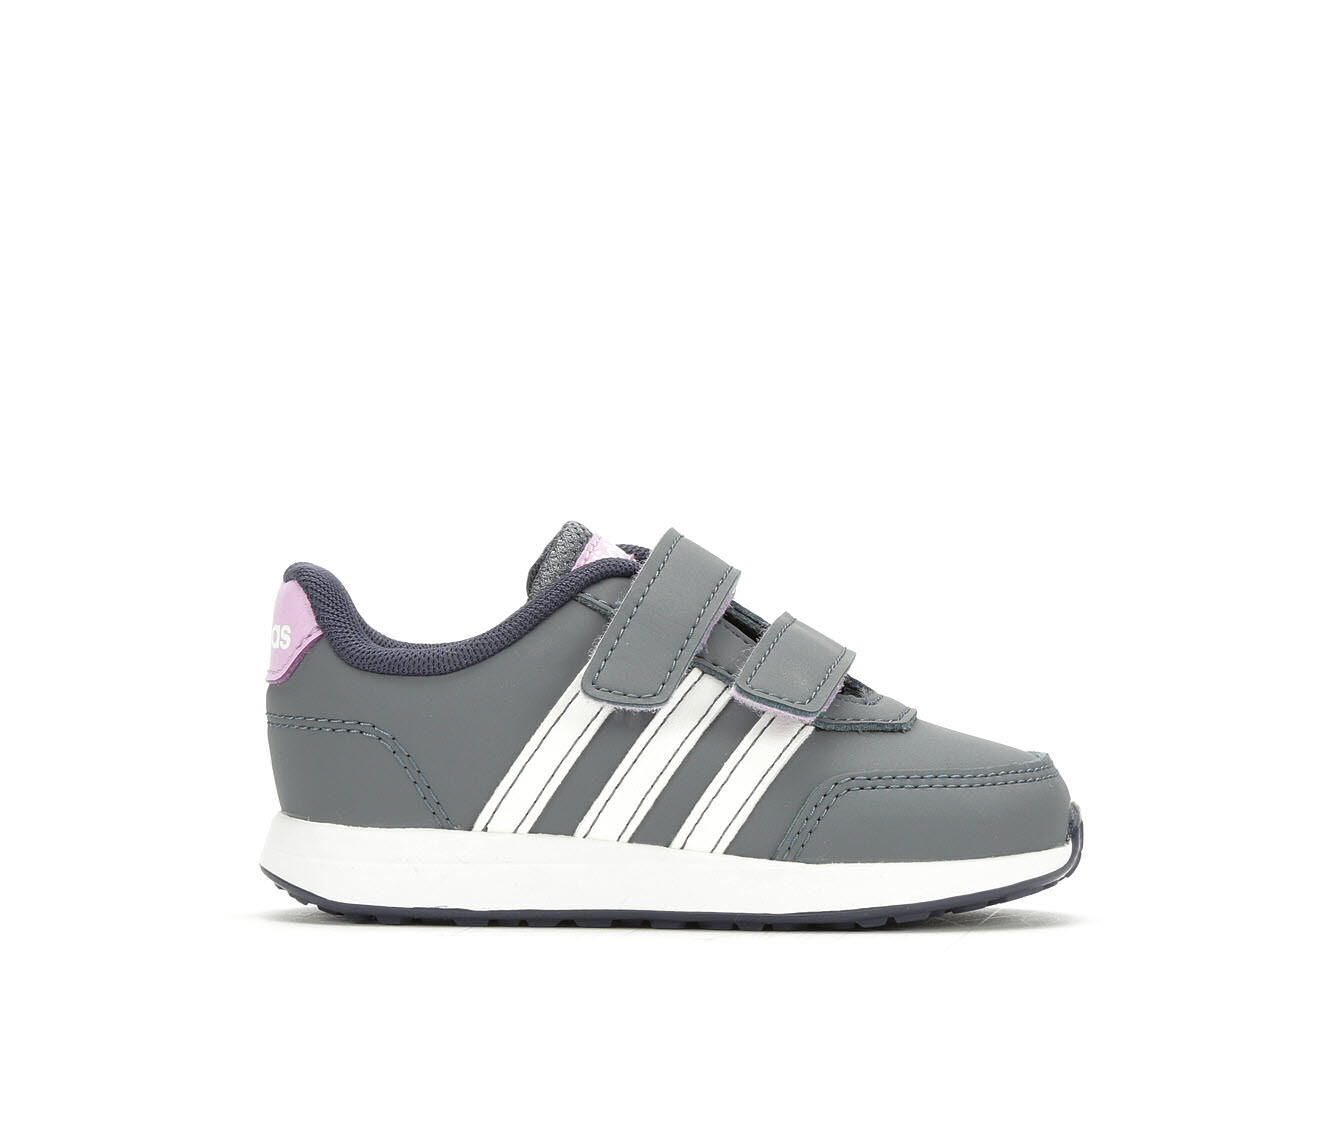 Girls' Adidas Shoes | Nordstrom